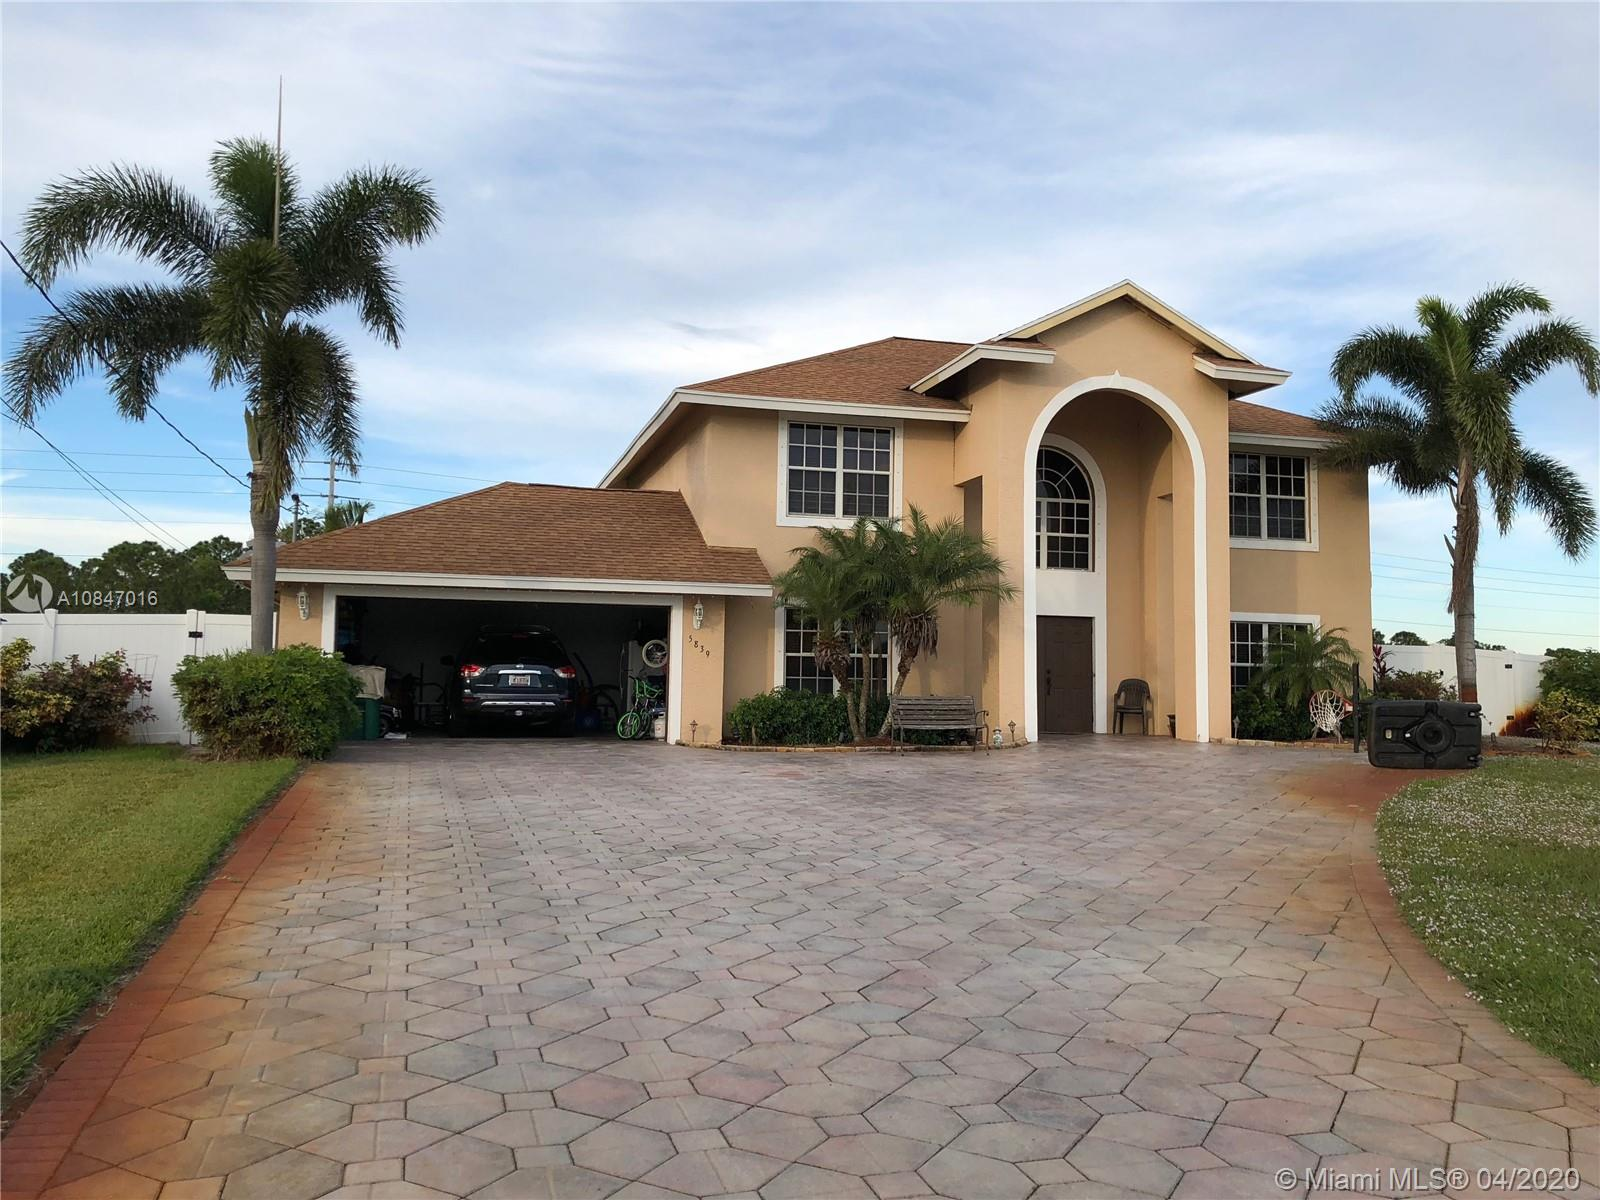 5839 NW Arley Ct, Port St. Lucie, FL 34986